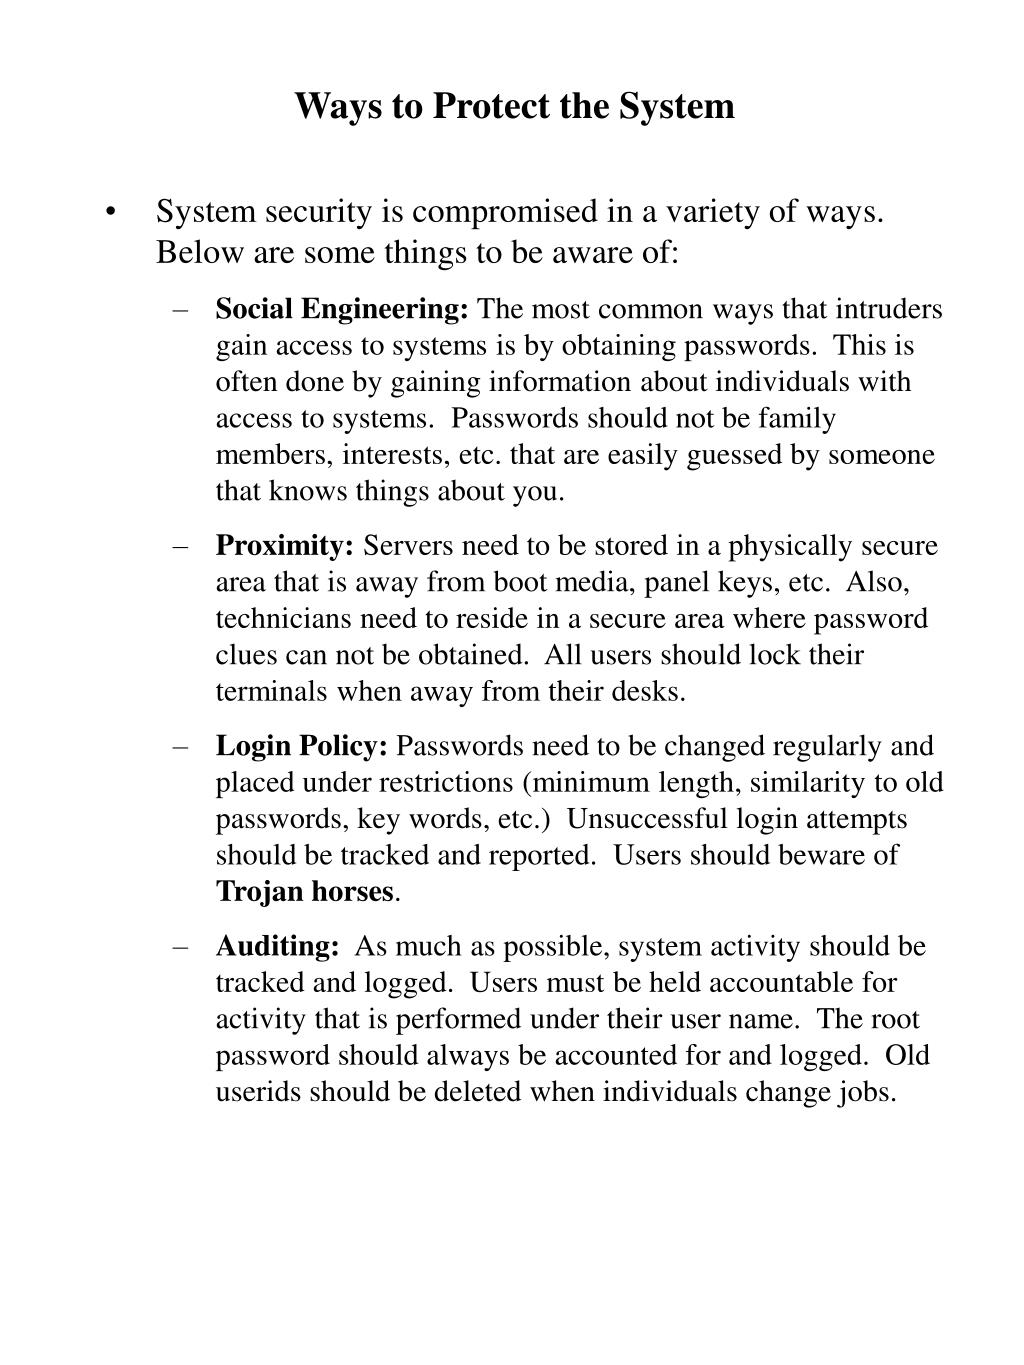 Ways to Protect the System